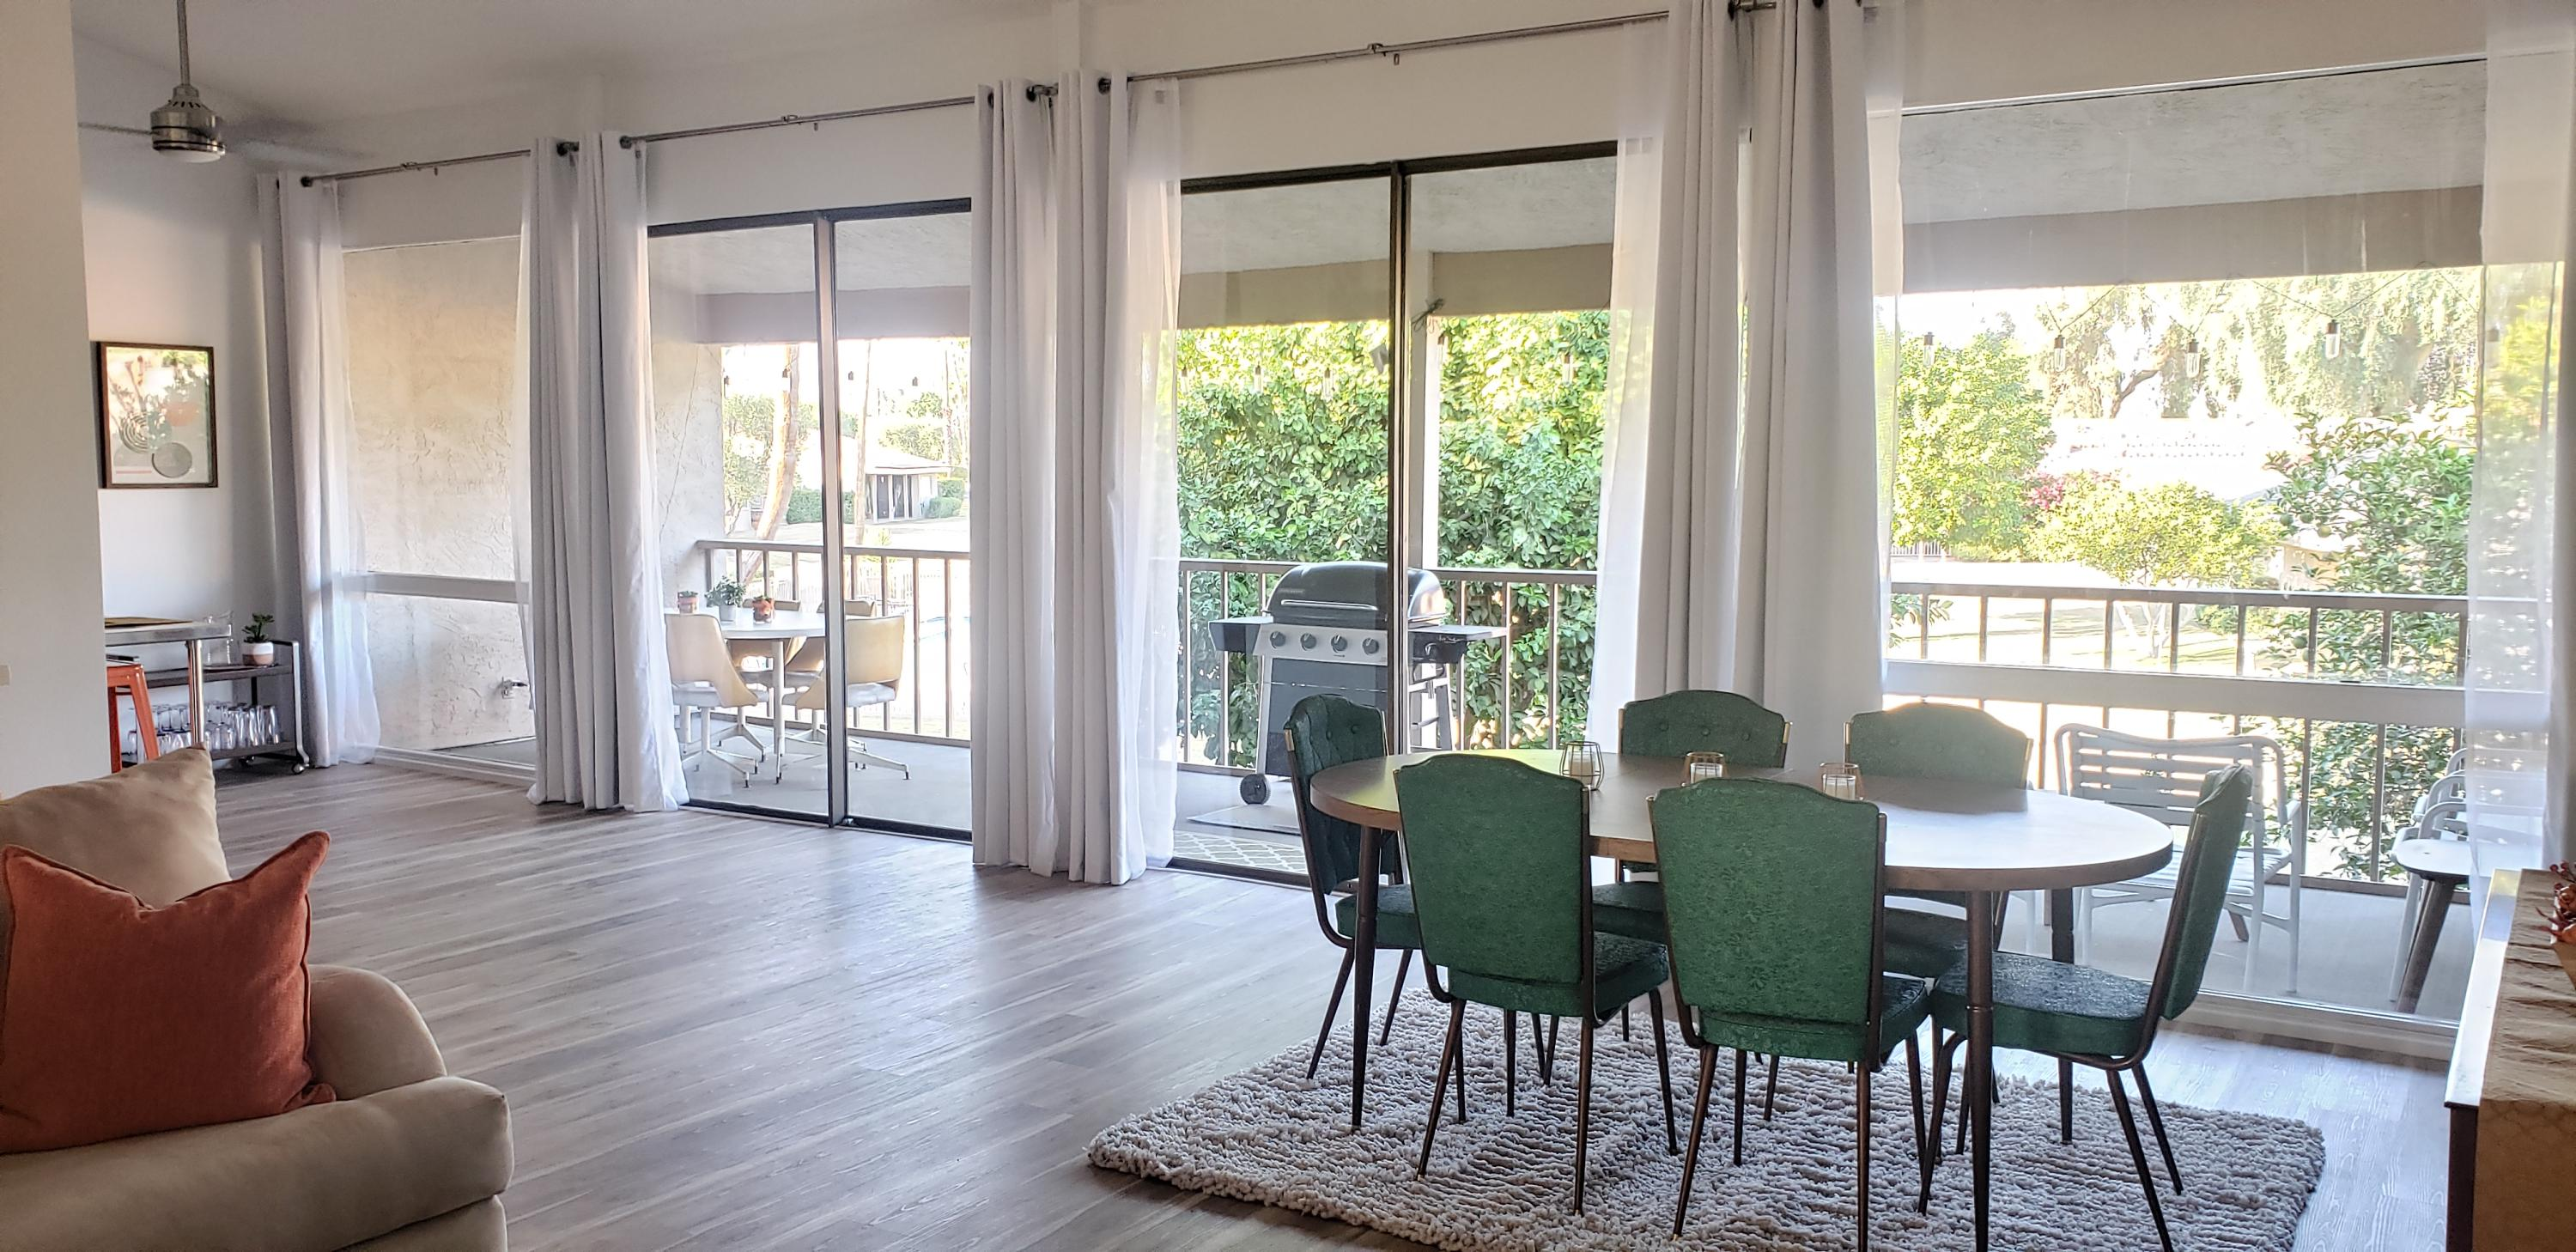 Home is temporarily occupied by guests. Home can only be shown on Sunday's from 12:30pm -2:00pm. Please give at least 24 hrs notice   Call Agent for access   Bring Offers! JUST REDUCED. Keep as your full time home, as your seasonal home/rental, or as your long term rental property.  This condo is Fully Remodeled from Top to Bottom. Brand New Tile & Fixtures. 3 Patios. New Vinyl Laminate with 1/2 inch underlayment. Custom Front Doors. Beautiful Wall Paper.Water &  Energy Efficient. Wifi enabled appliances.Pre wired AV throughout. Smoke Detectors alert your Cell phone. HOA Installing New Roofs on all units.